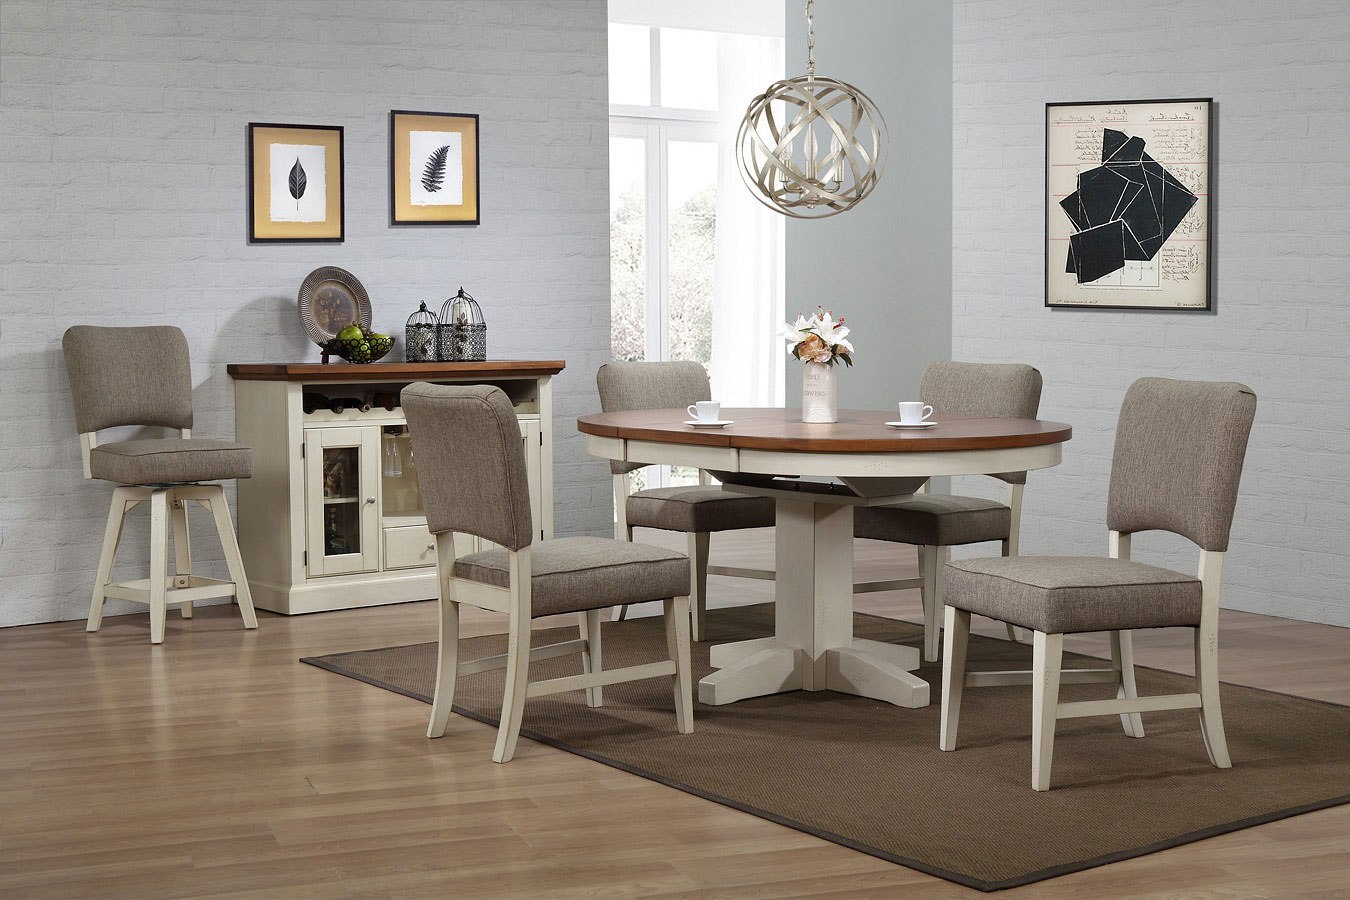 Antique White Round Dining Room Set w/ Parsons Side Chairs ...